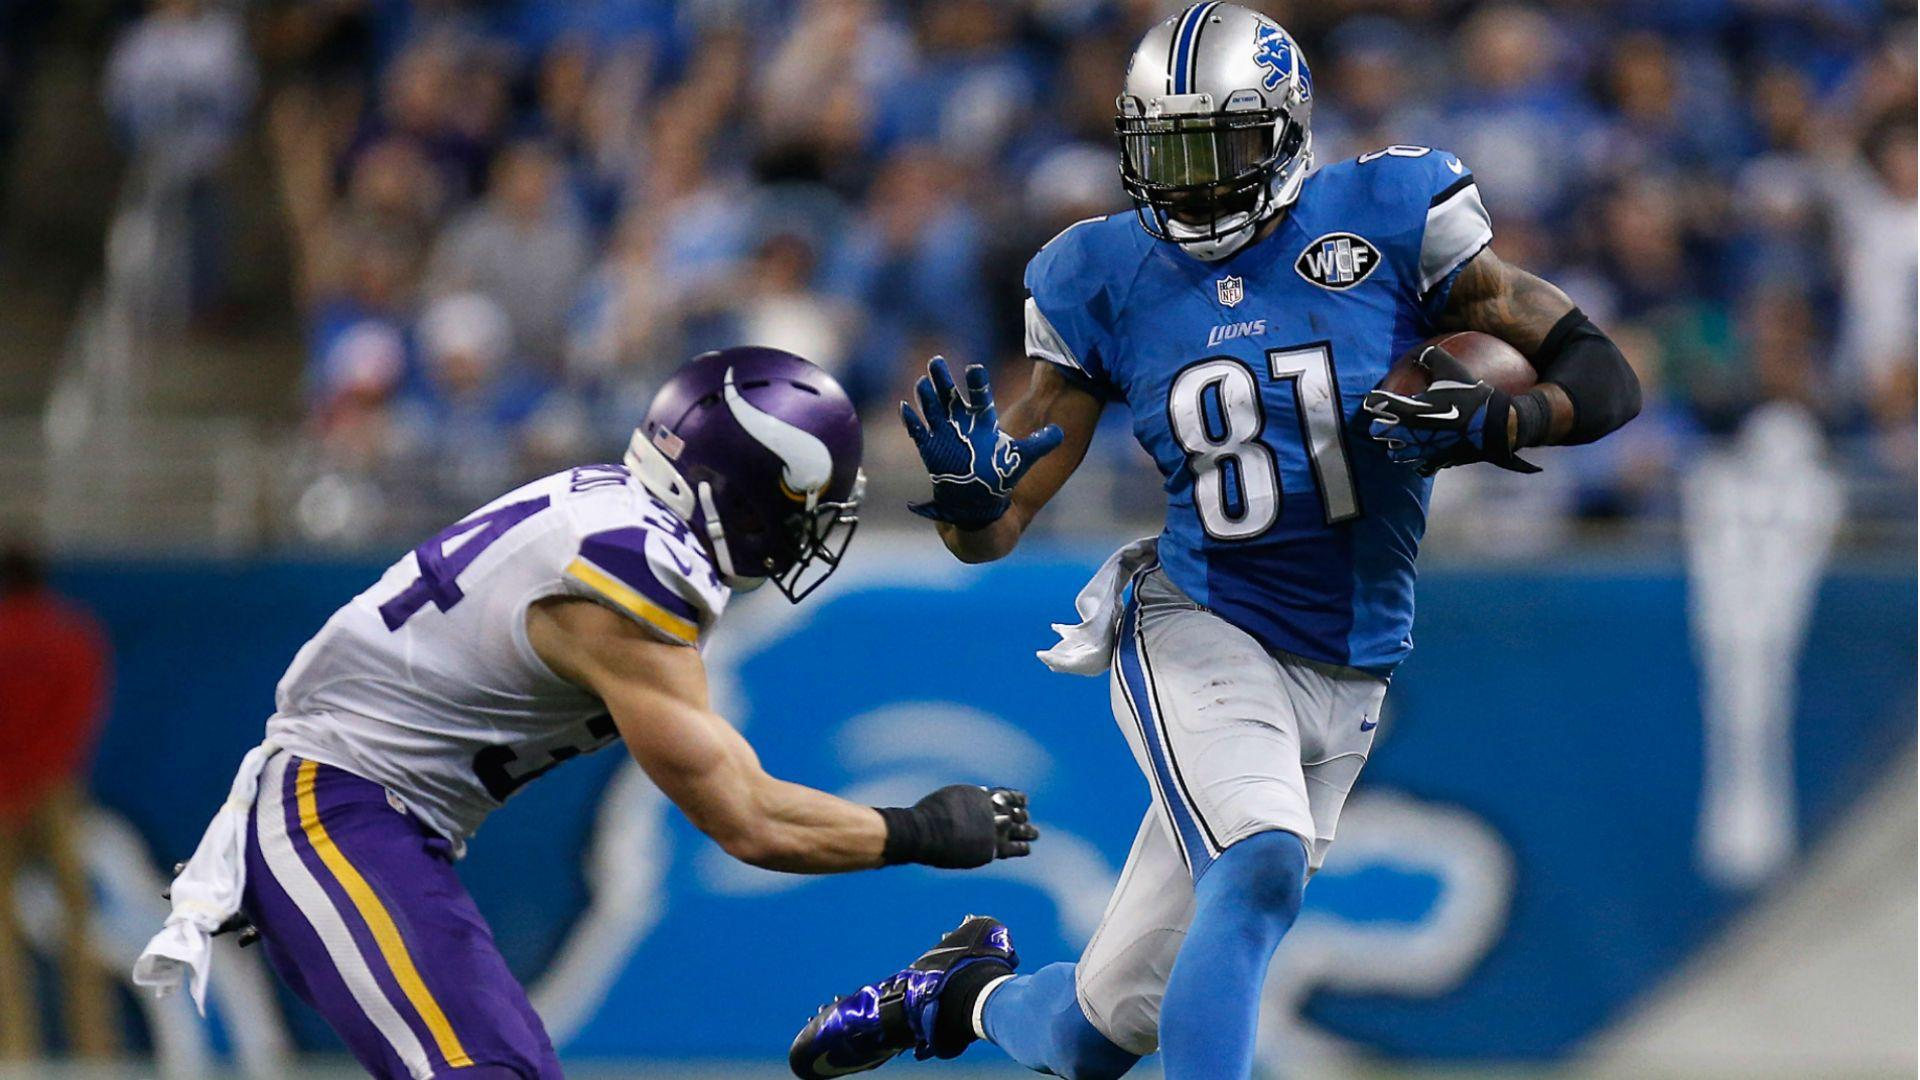 Detroit Lions Schedule The official source of the Lions regular season and preseason schedule